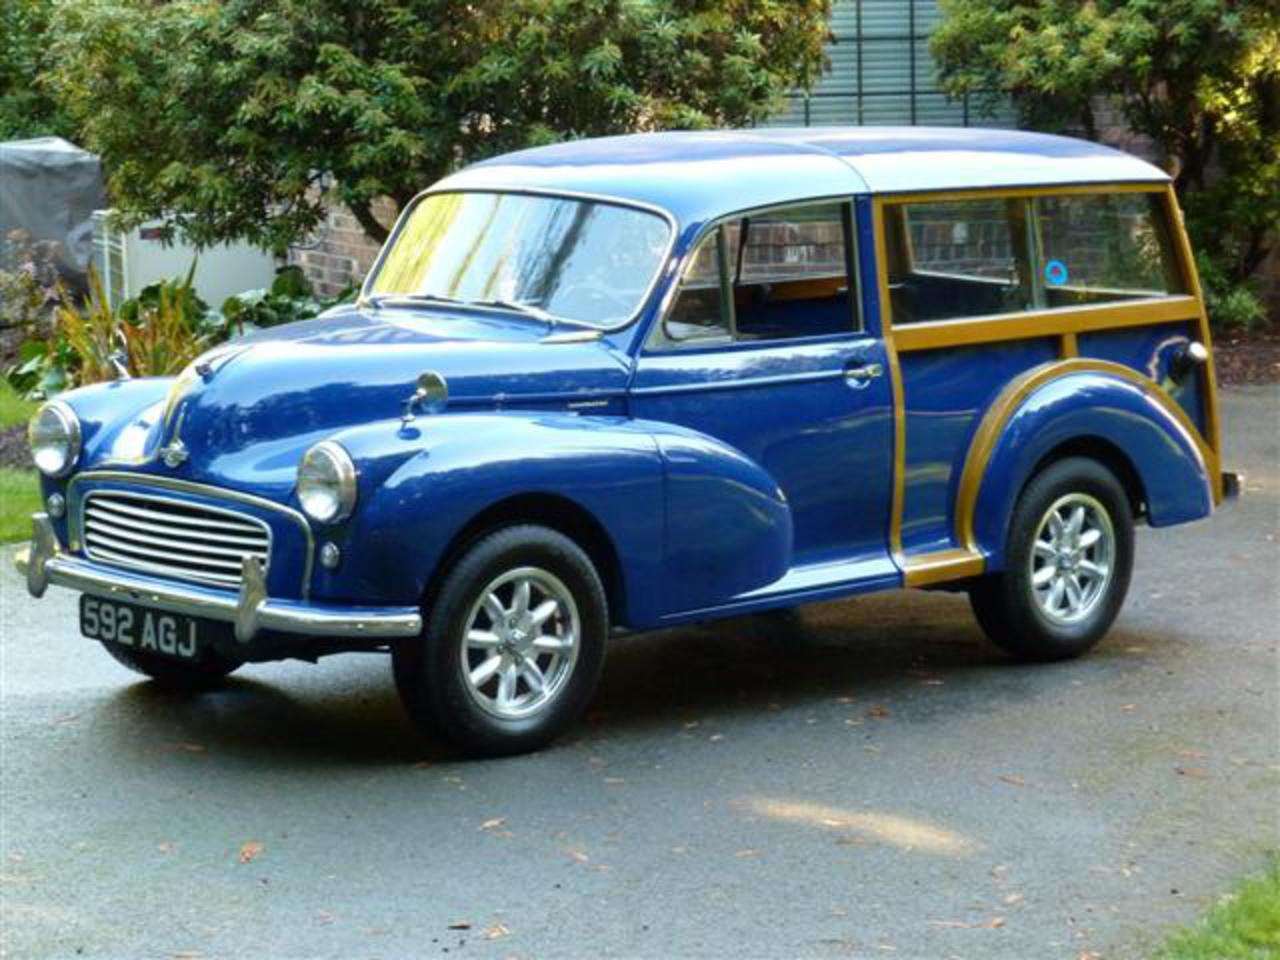 The Morris Minor Traveller